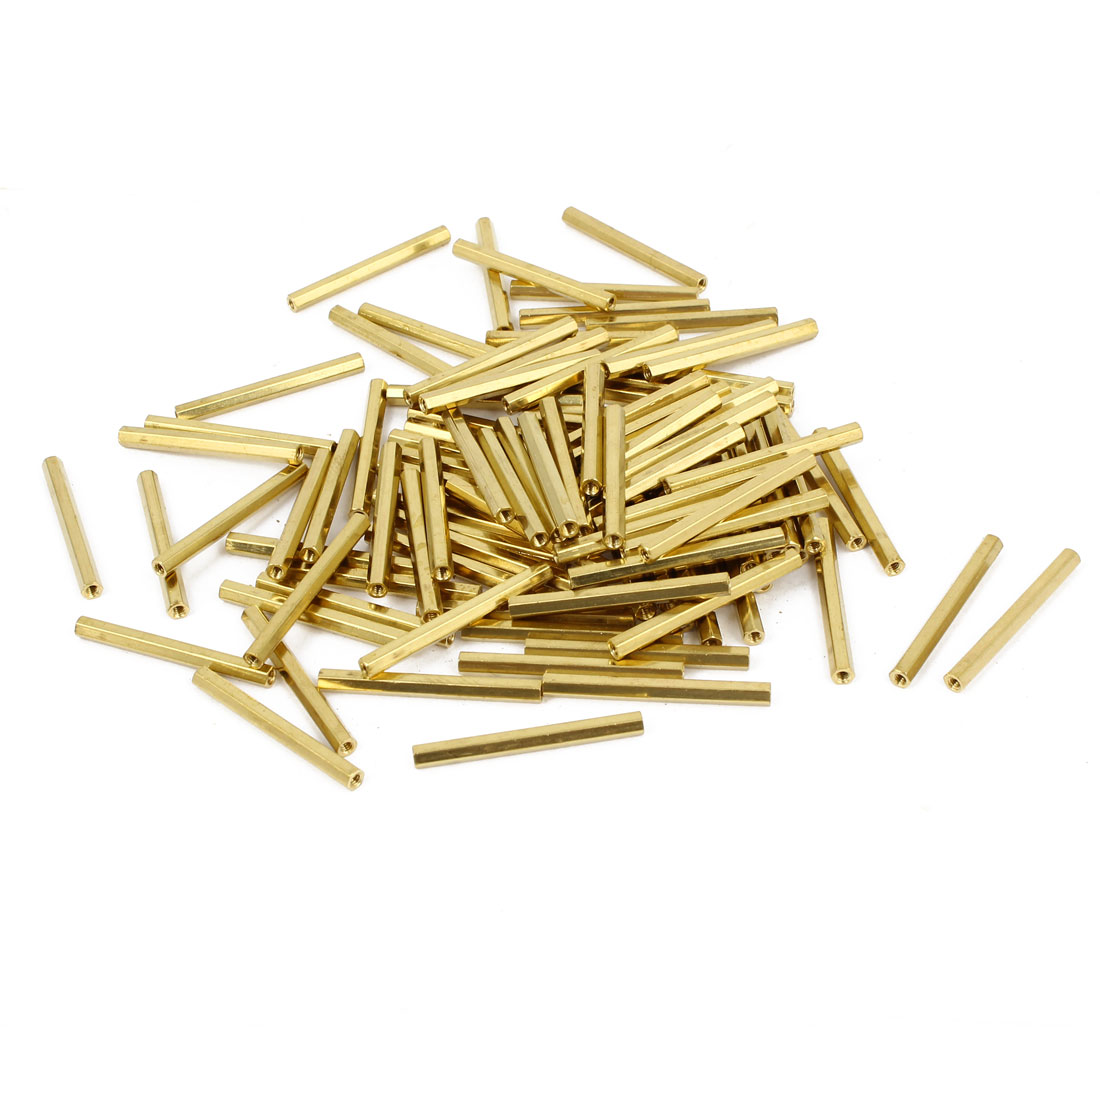 100 Pcs M2 Female Thread Brass Pillar Standoff Hexagonal Spacer 31mm Length